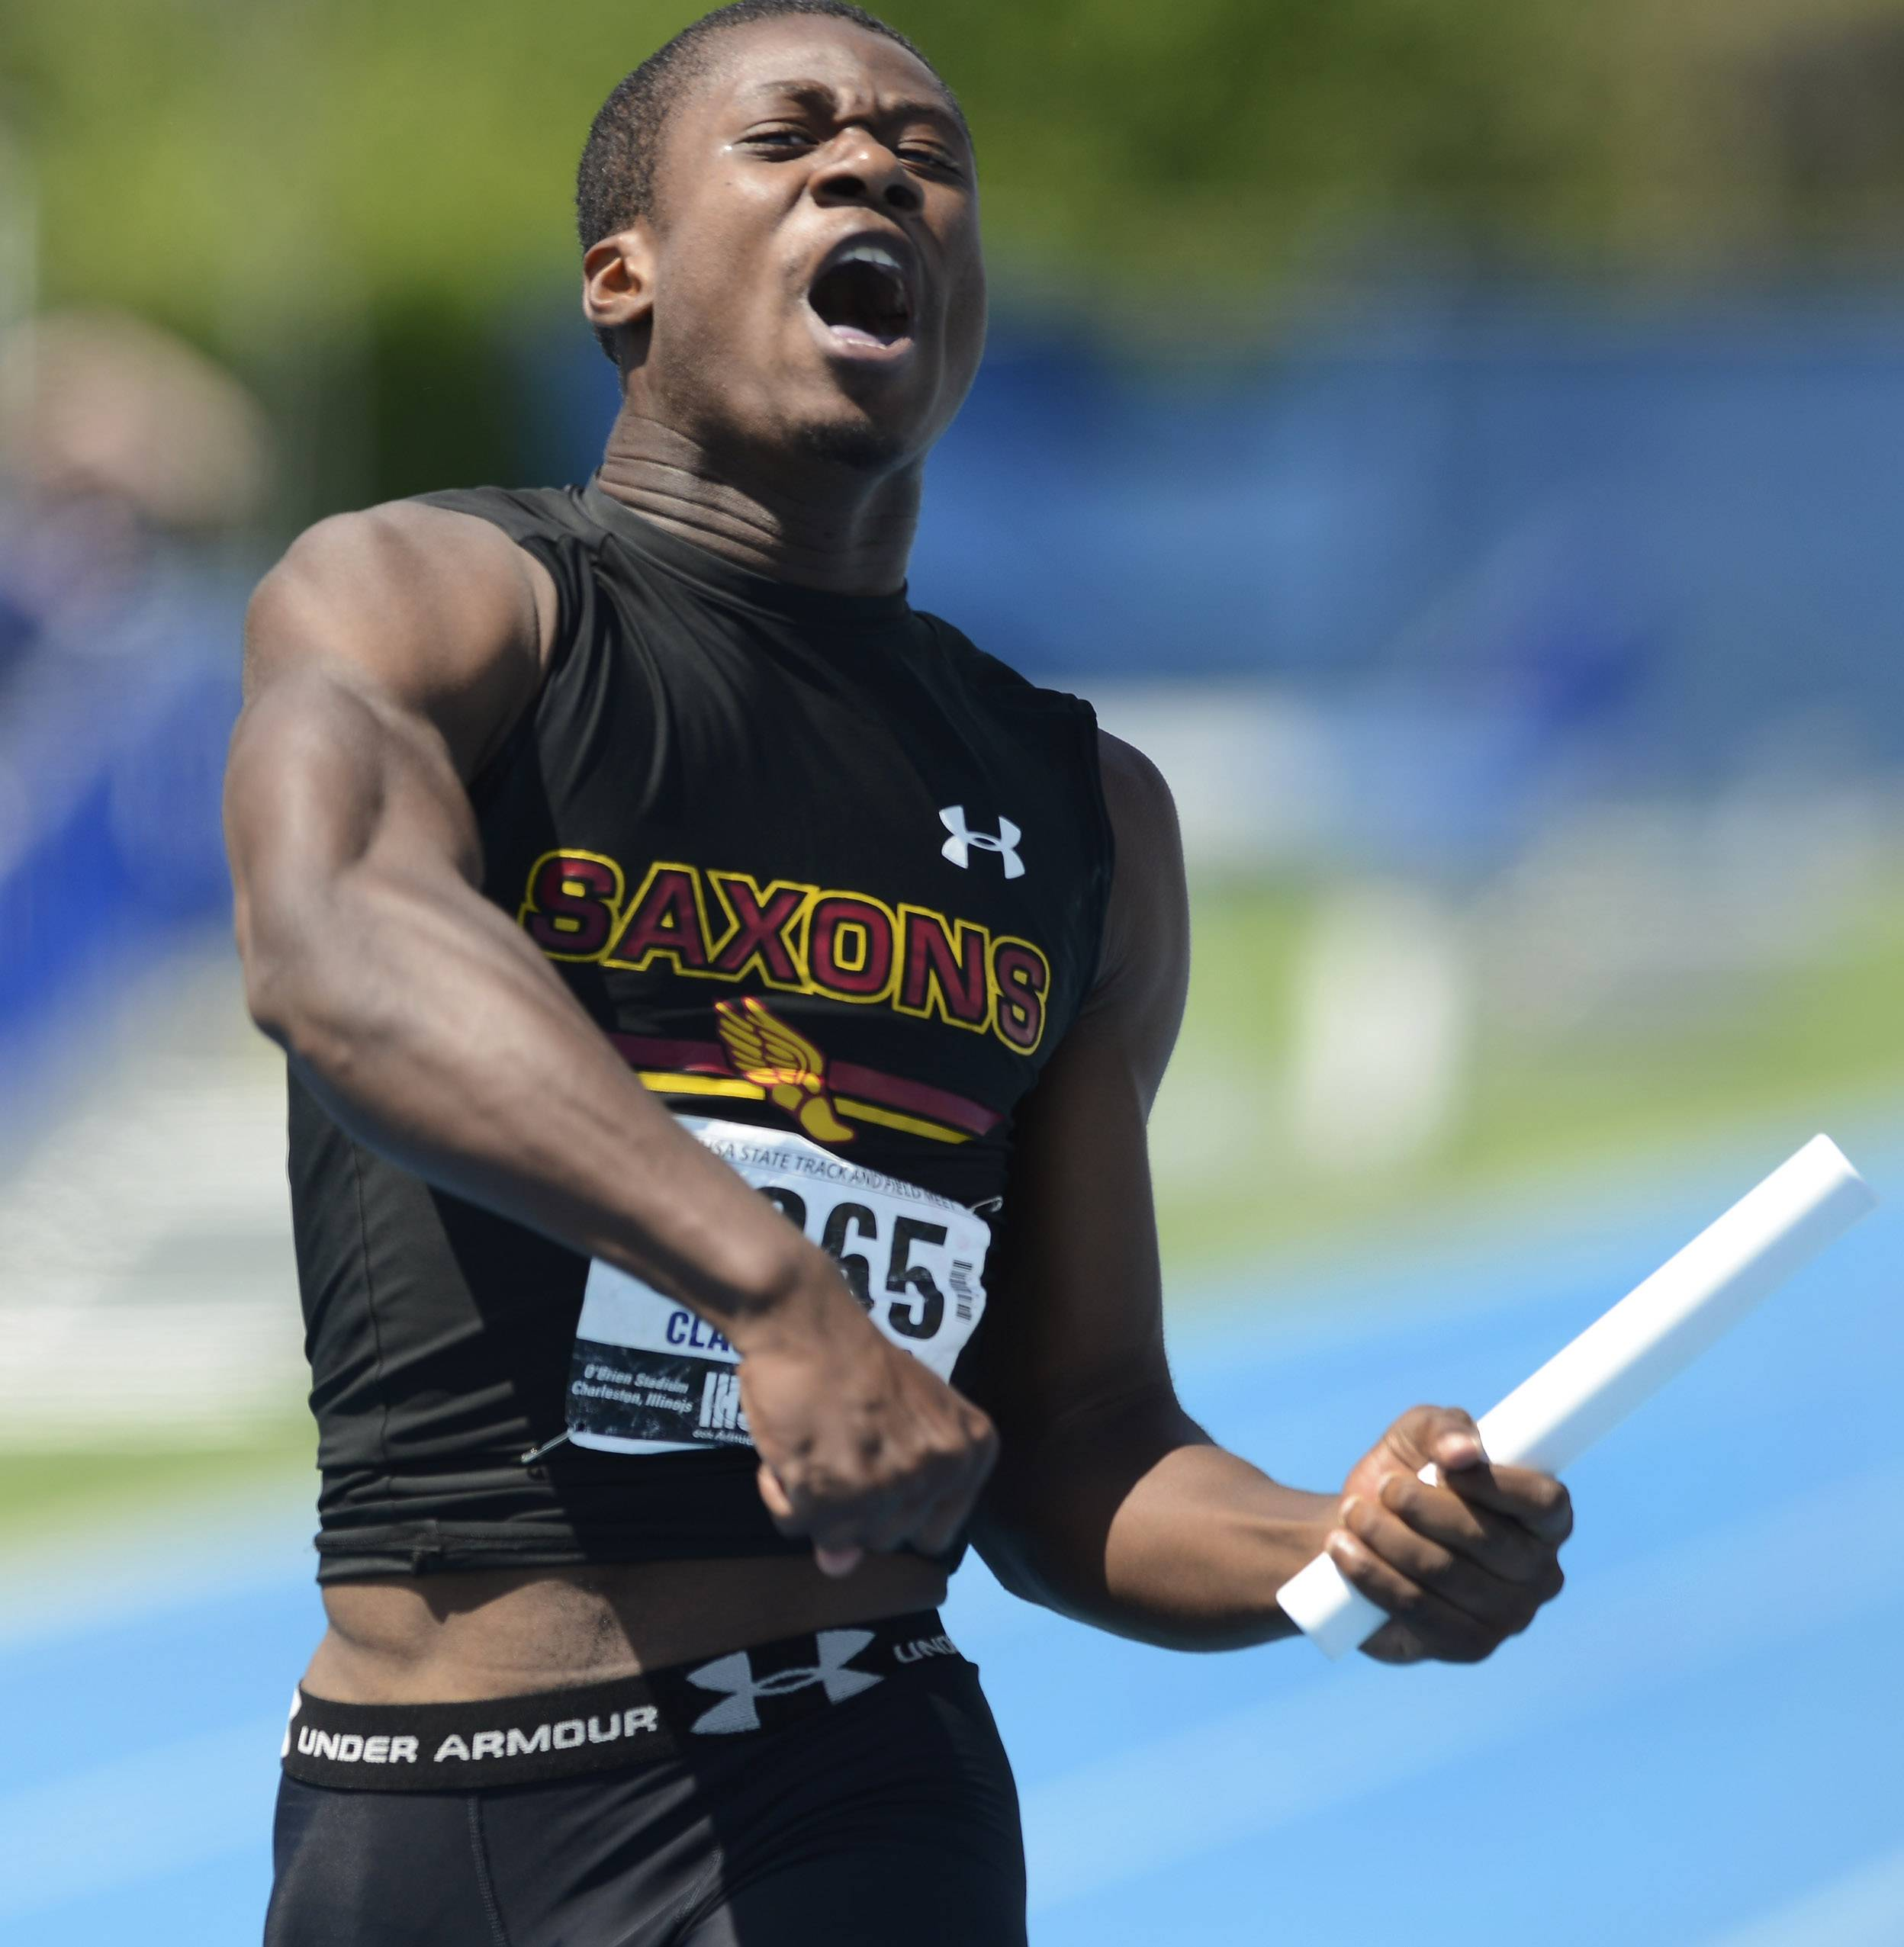 Schaumburg's Jarman McMillon celebrates at the finish line as the Saxons win the 4x200-meter relay during the Class 3A boys track and field state finals in Charleston on Saturday.